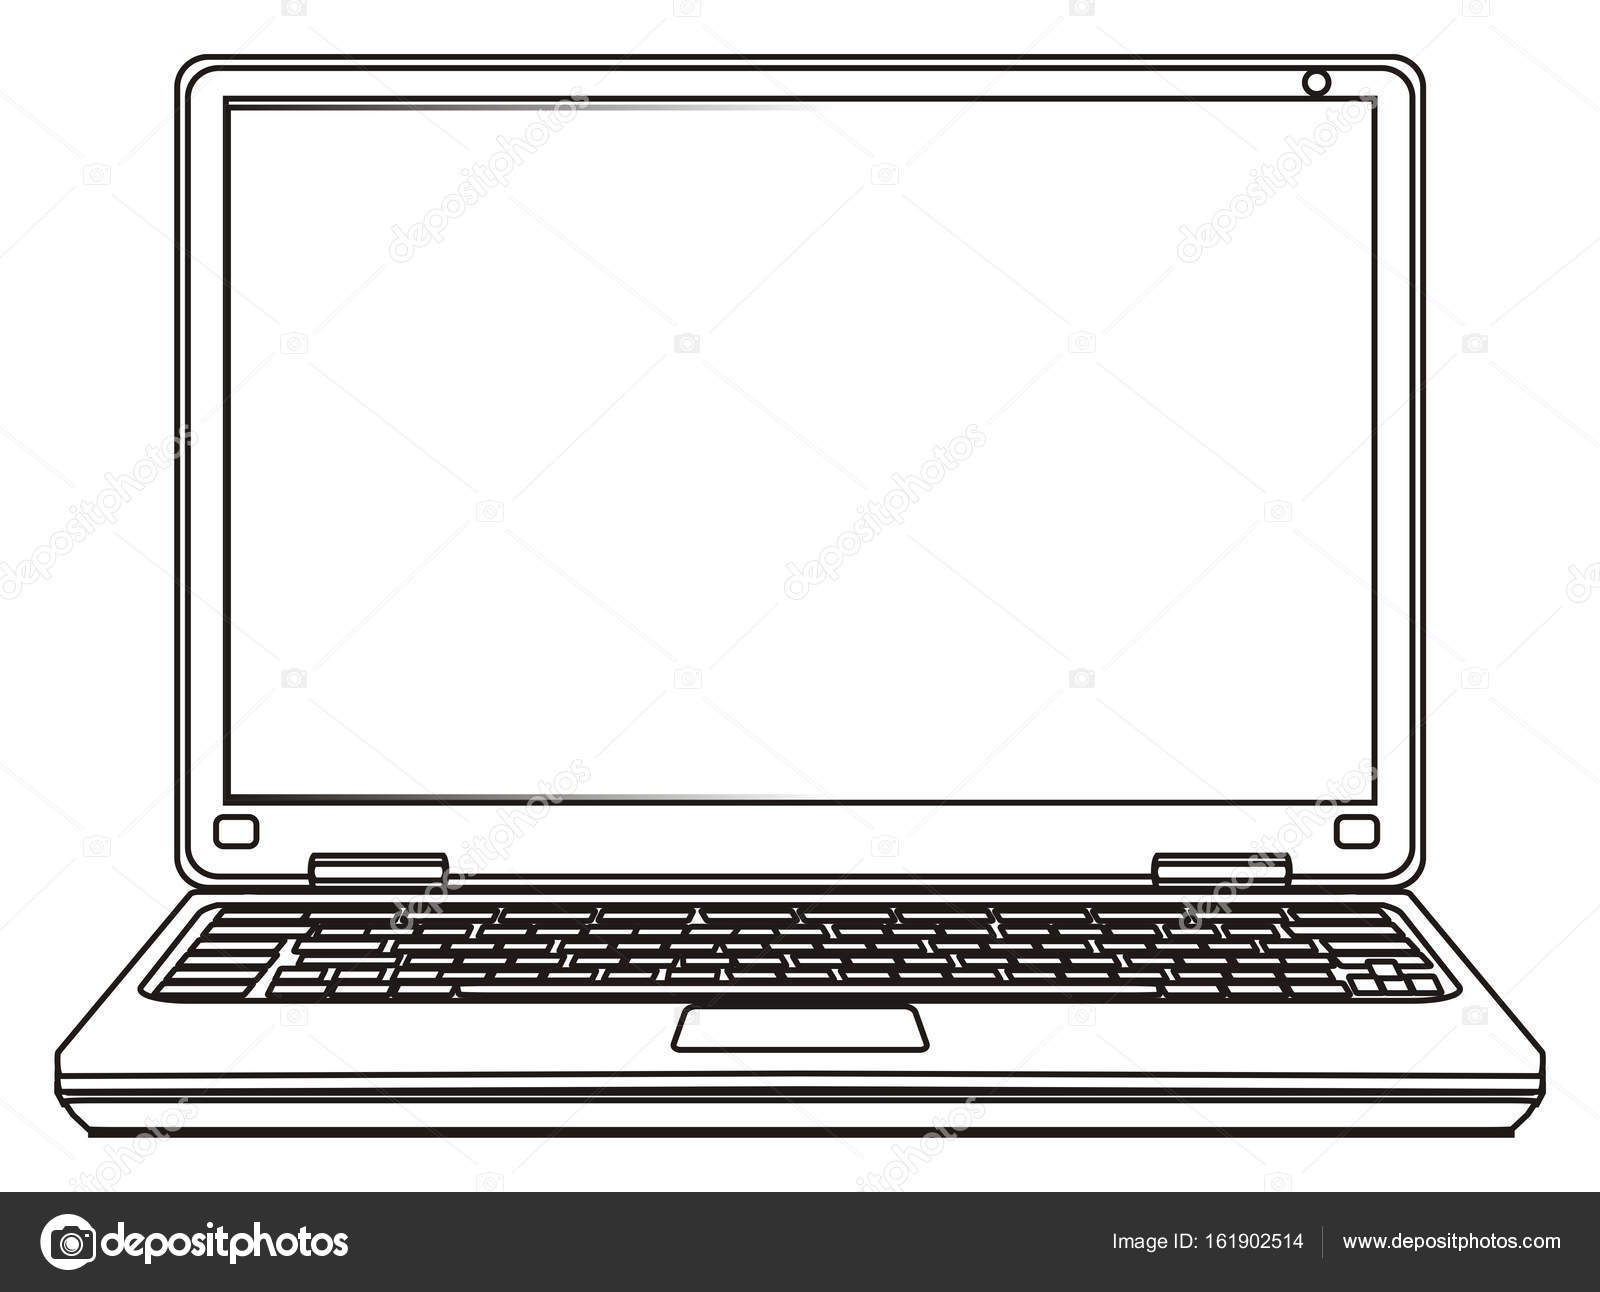 stock photo one modern laptop